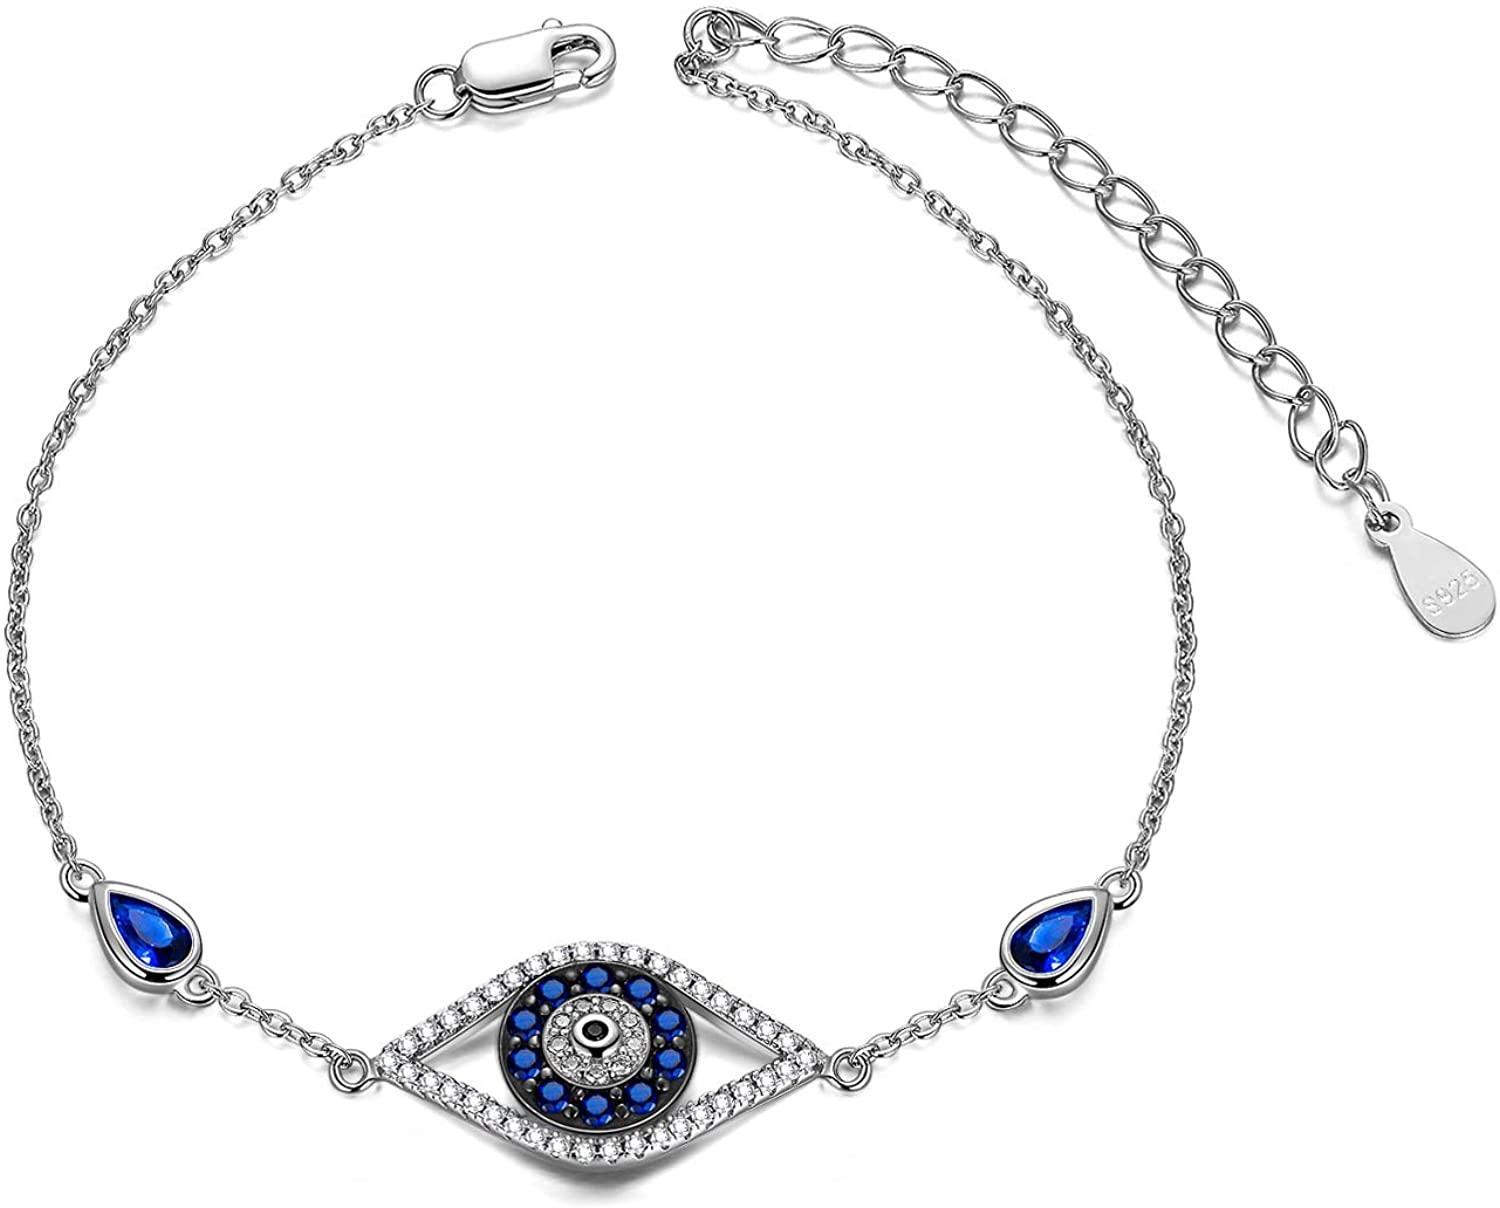 Sterling Silver Evil Eye  Bracelet, Blue Cubic Zirconia Link Bracelet for Women Ladies